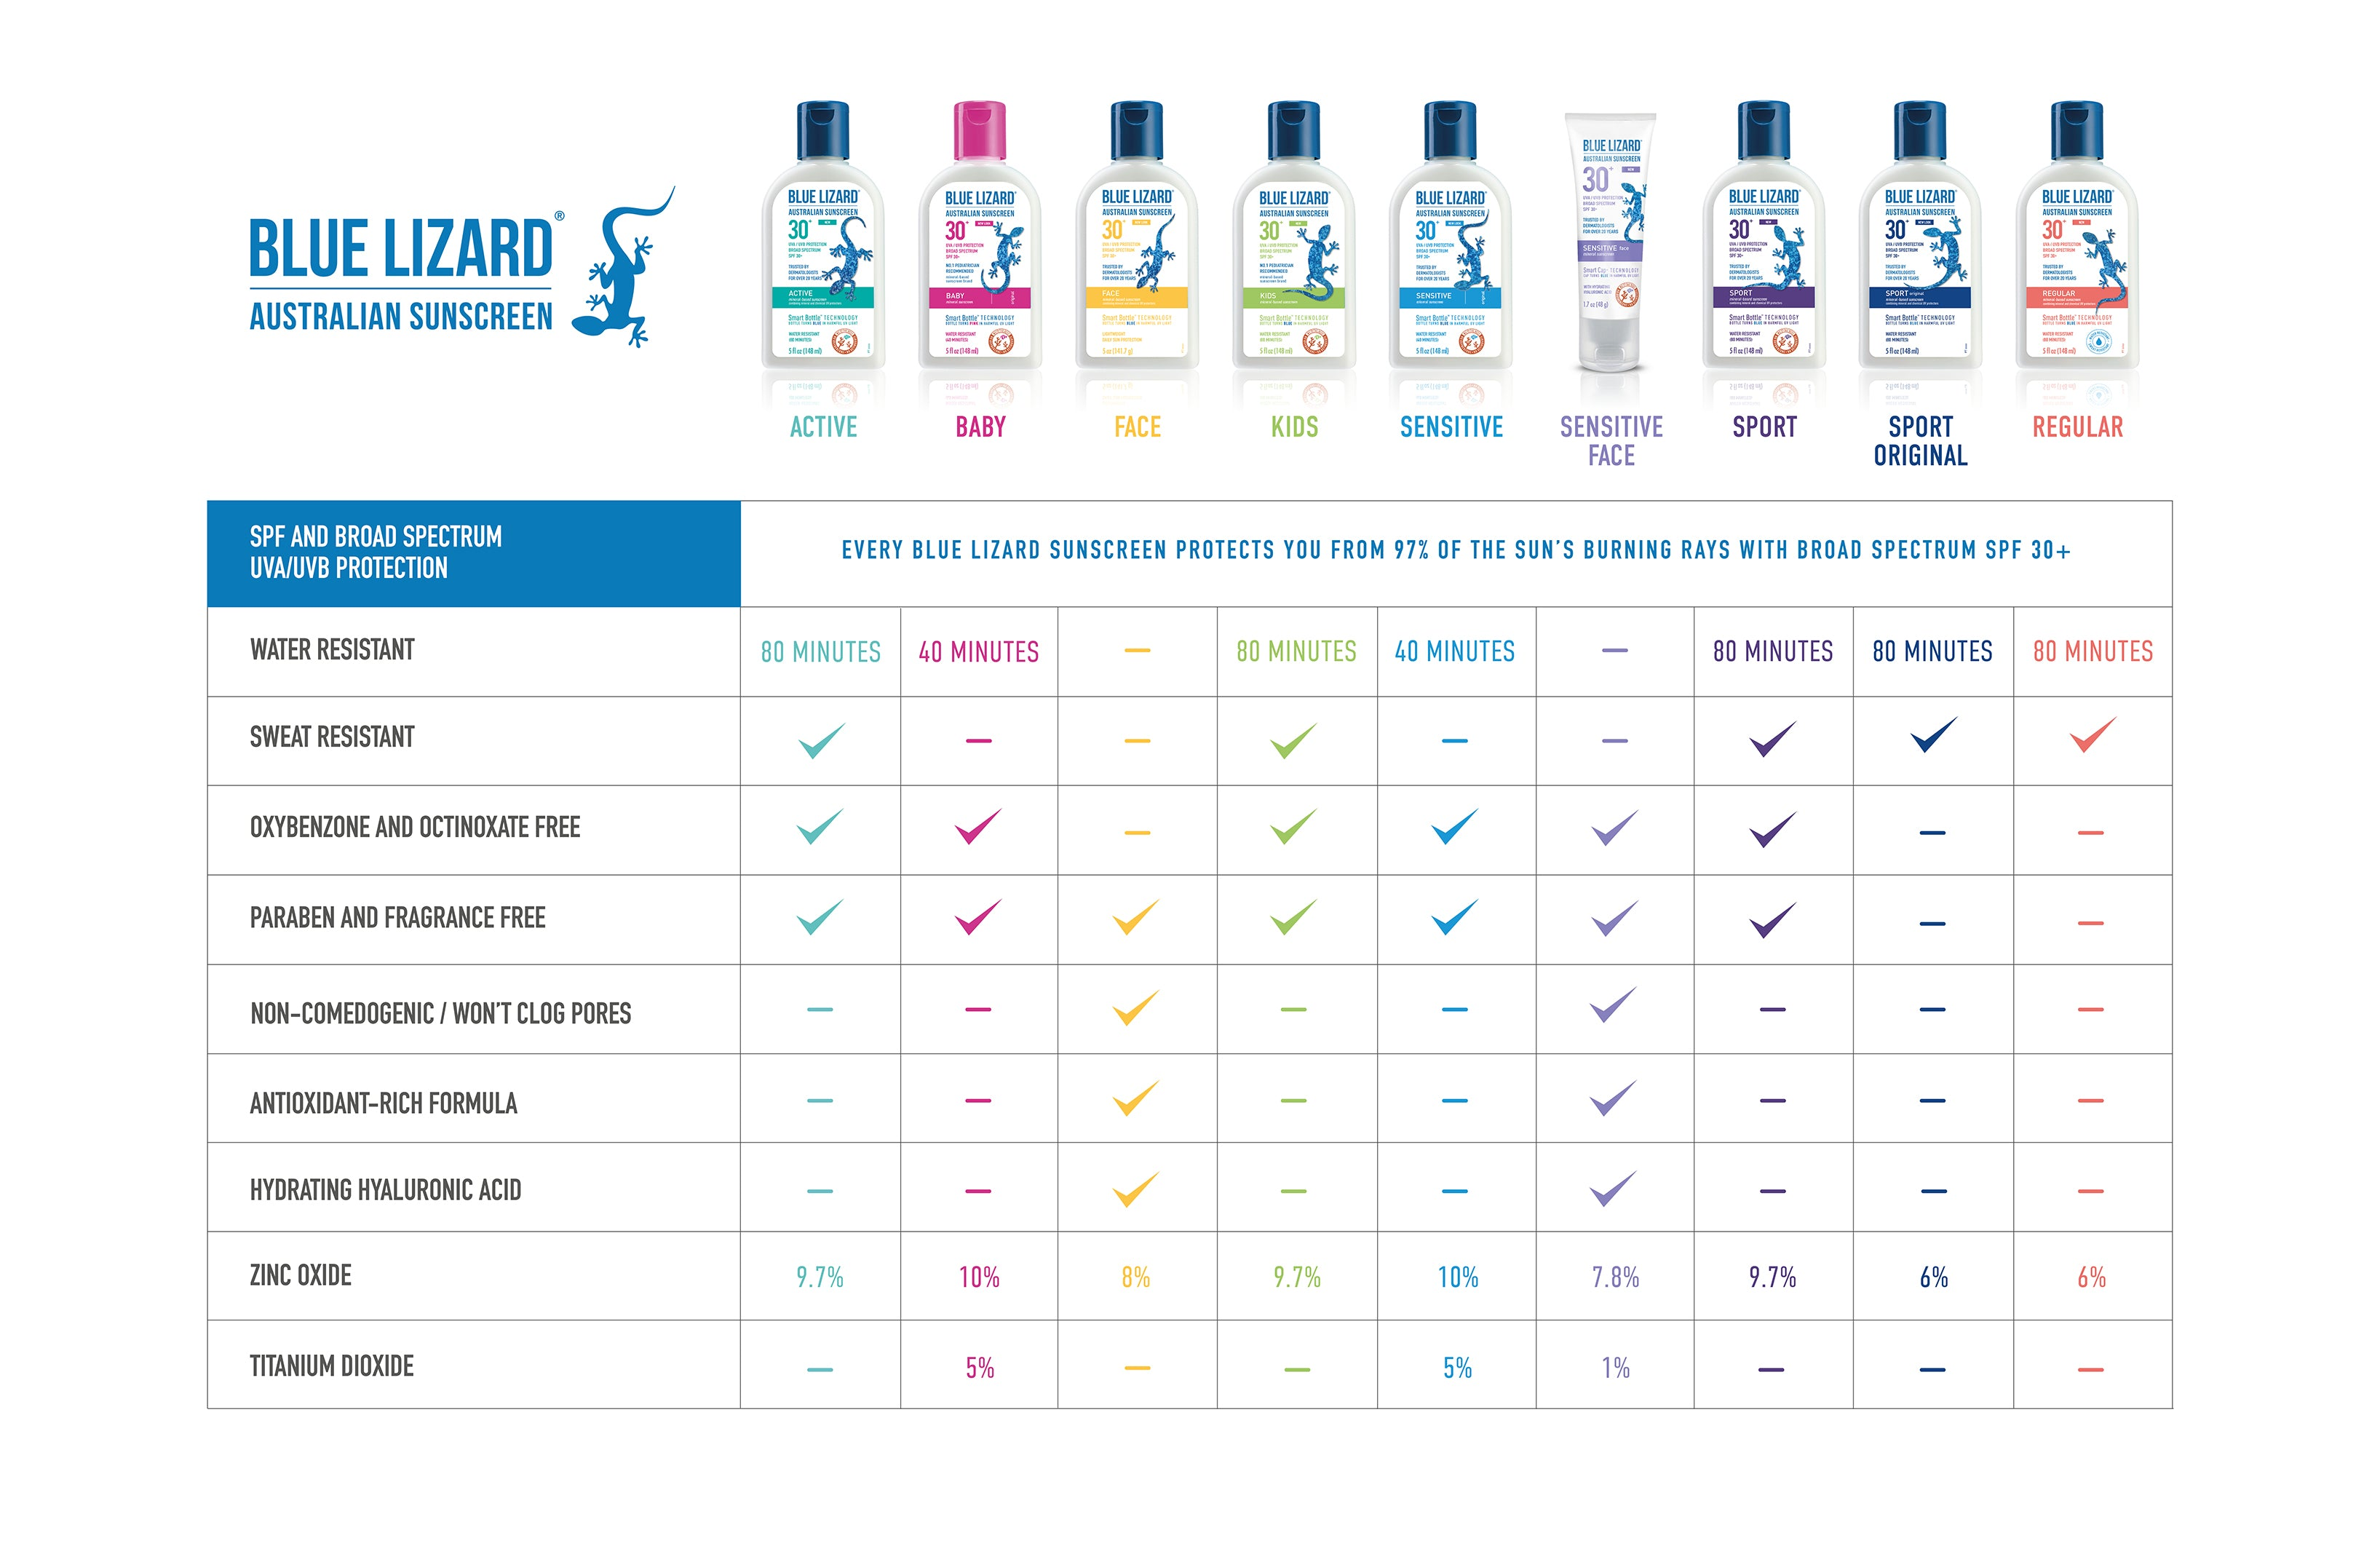 2019 Blue Lizard Line-up Comparison Chart